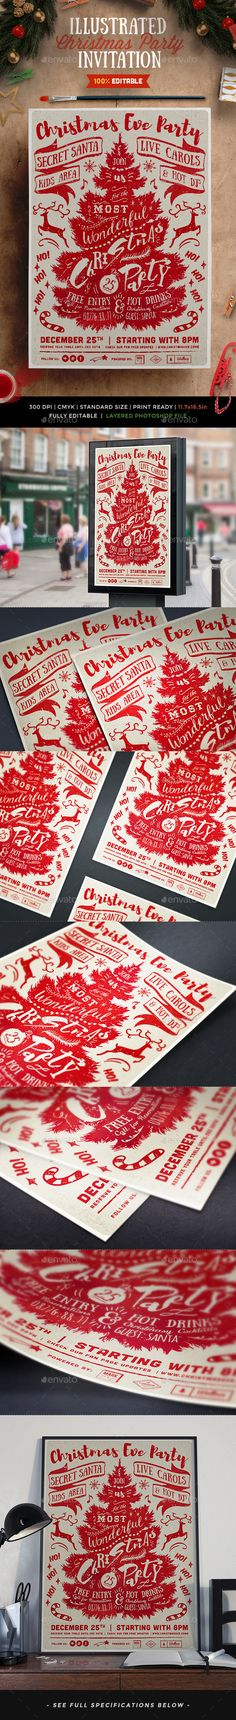 Illustrated Christmas Party Flyer Invitation - Invitations Cards & Invites